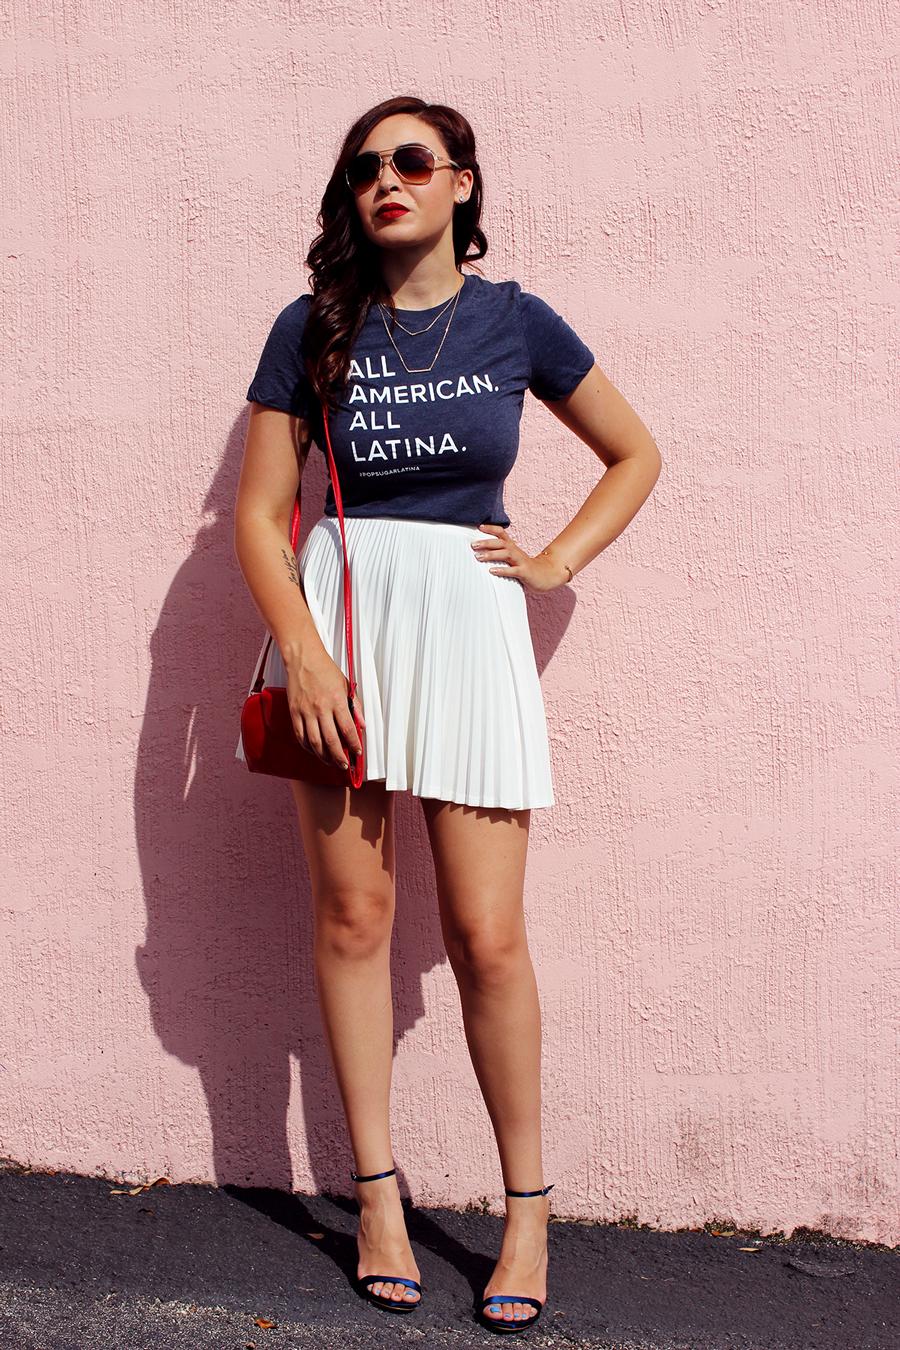 Fixin-to-thrill-latina-austin-fashion-blog-fourth-4th-july-style-holiday-themed-red-white-blue-popsugar-american-10